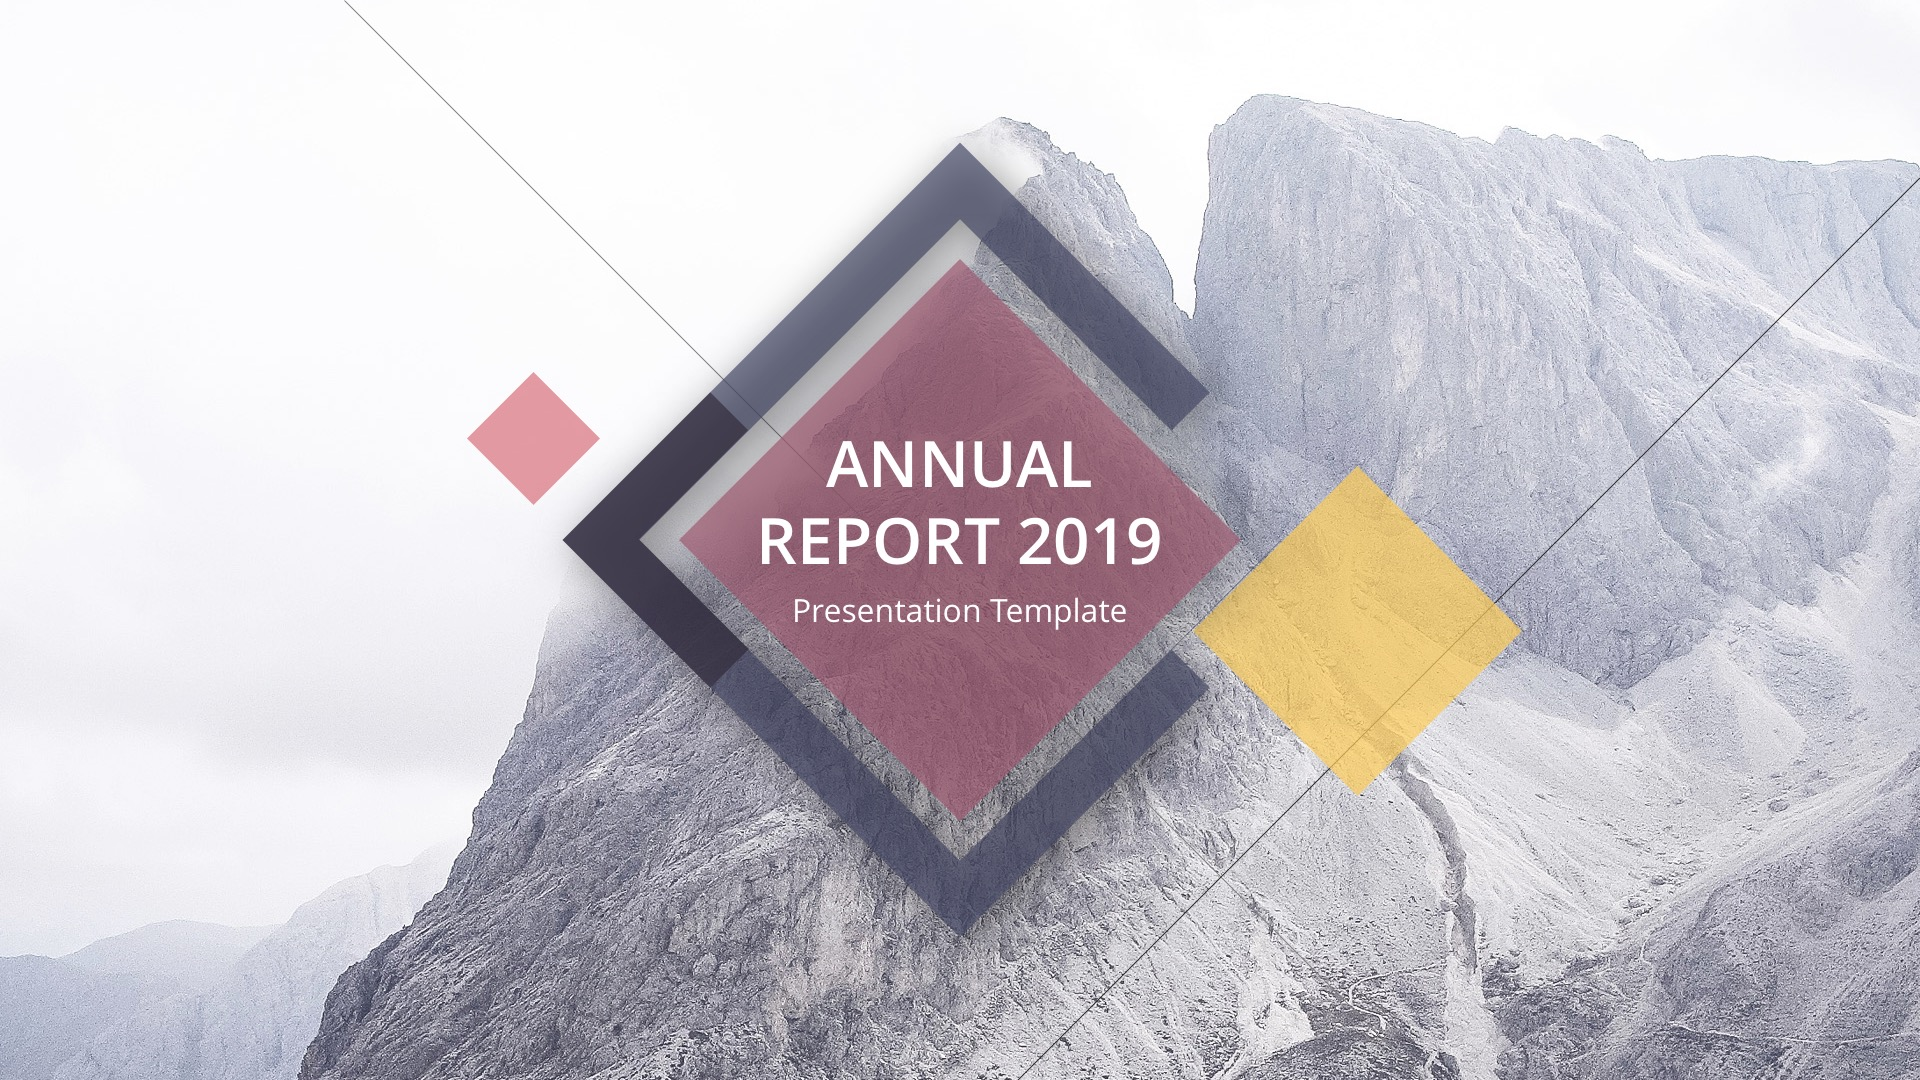 Annual Report 2019 - Business Google Slide Template